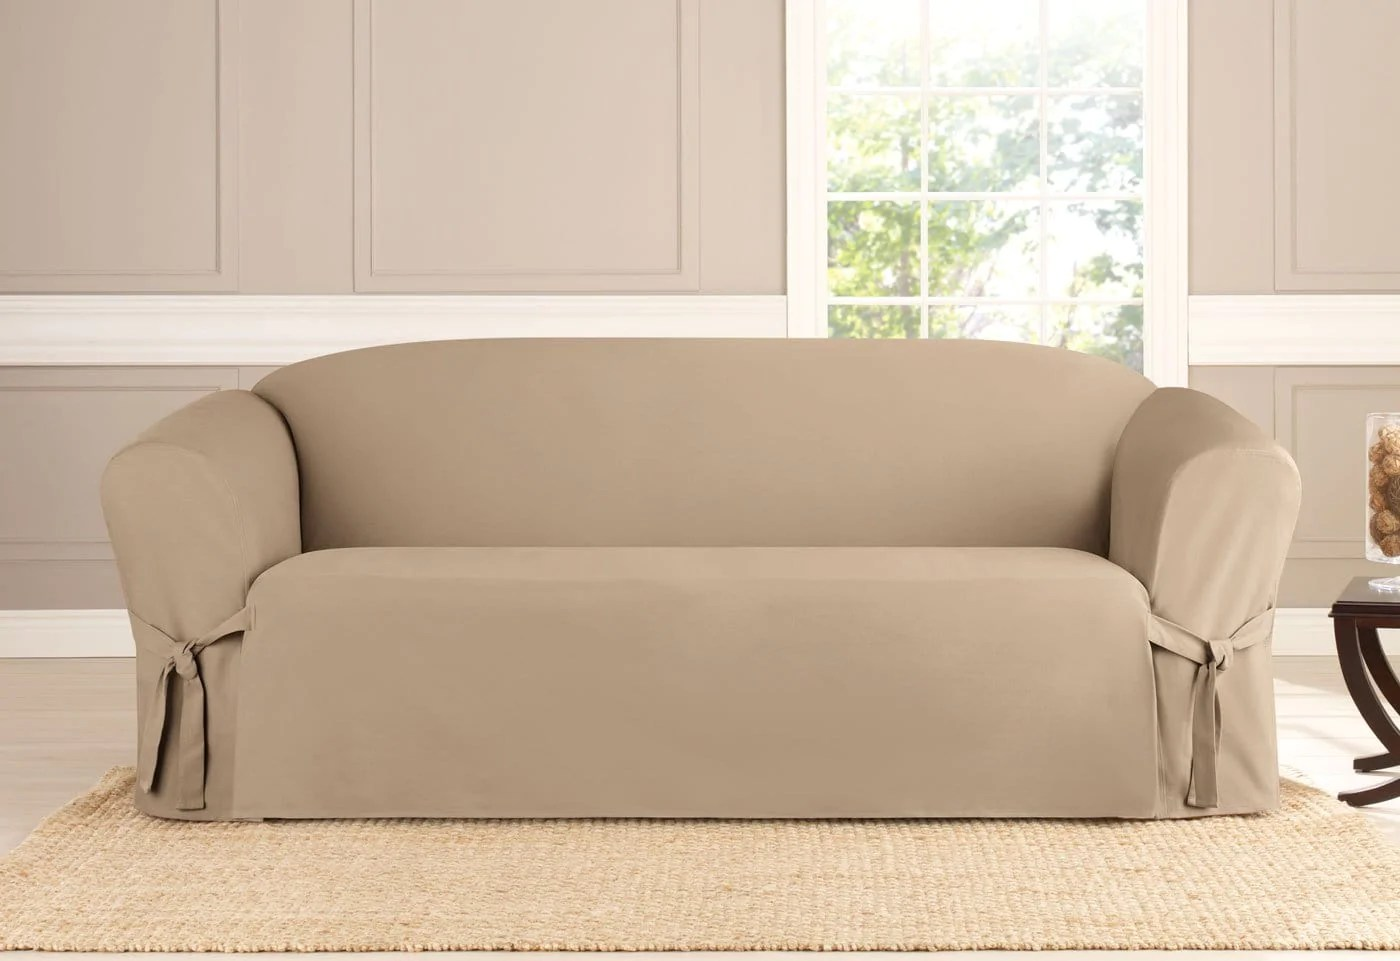 khaki sofa slipcovers leather dimensions heavyweight cotton duck one piece slipcover surefit